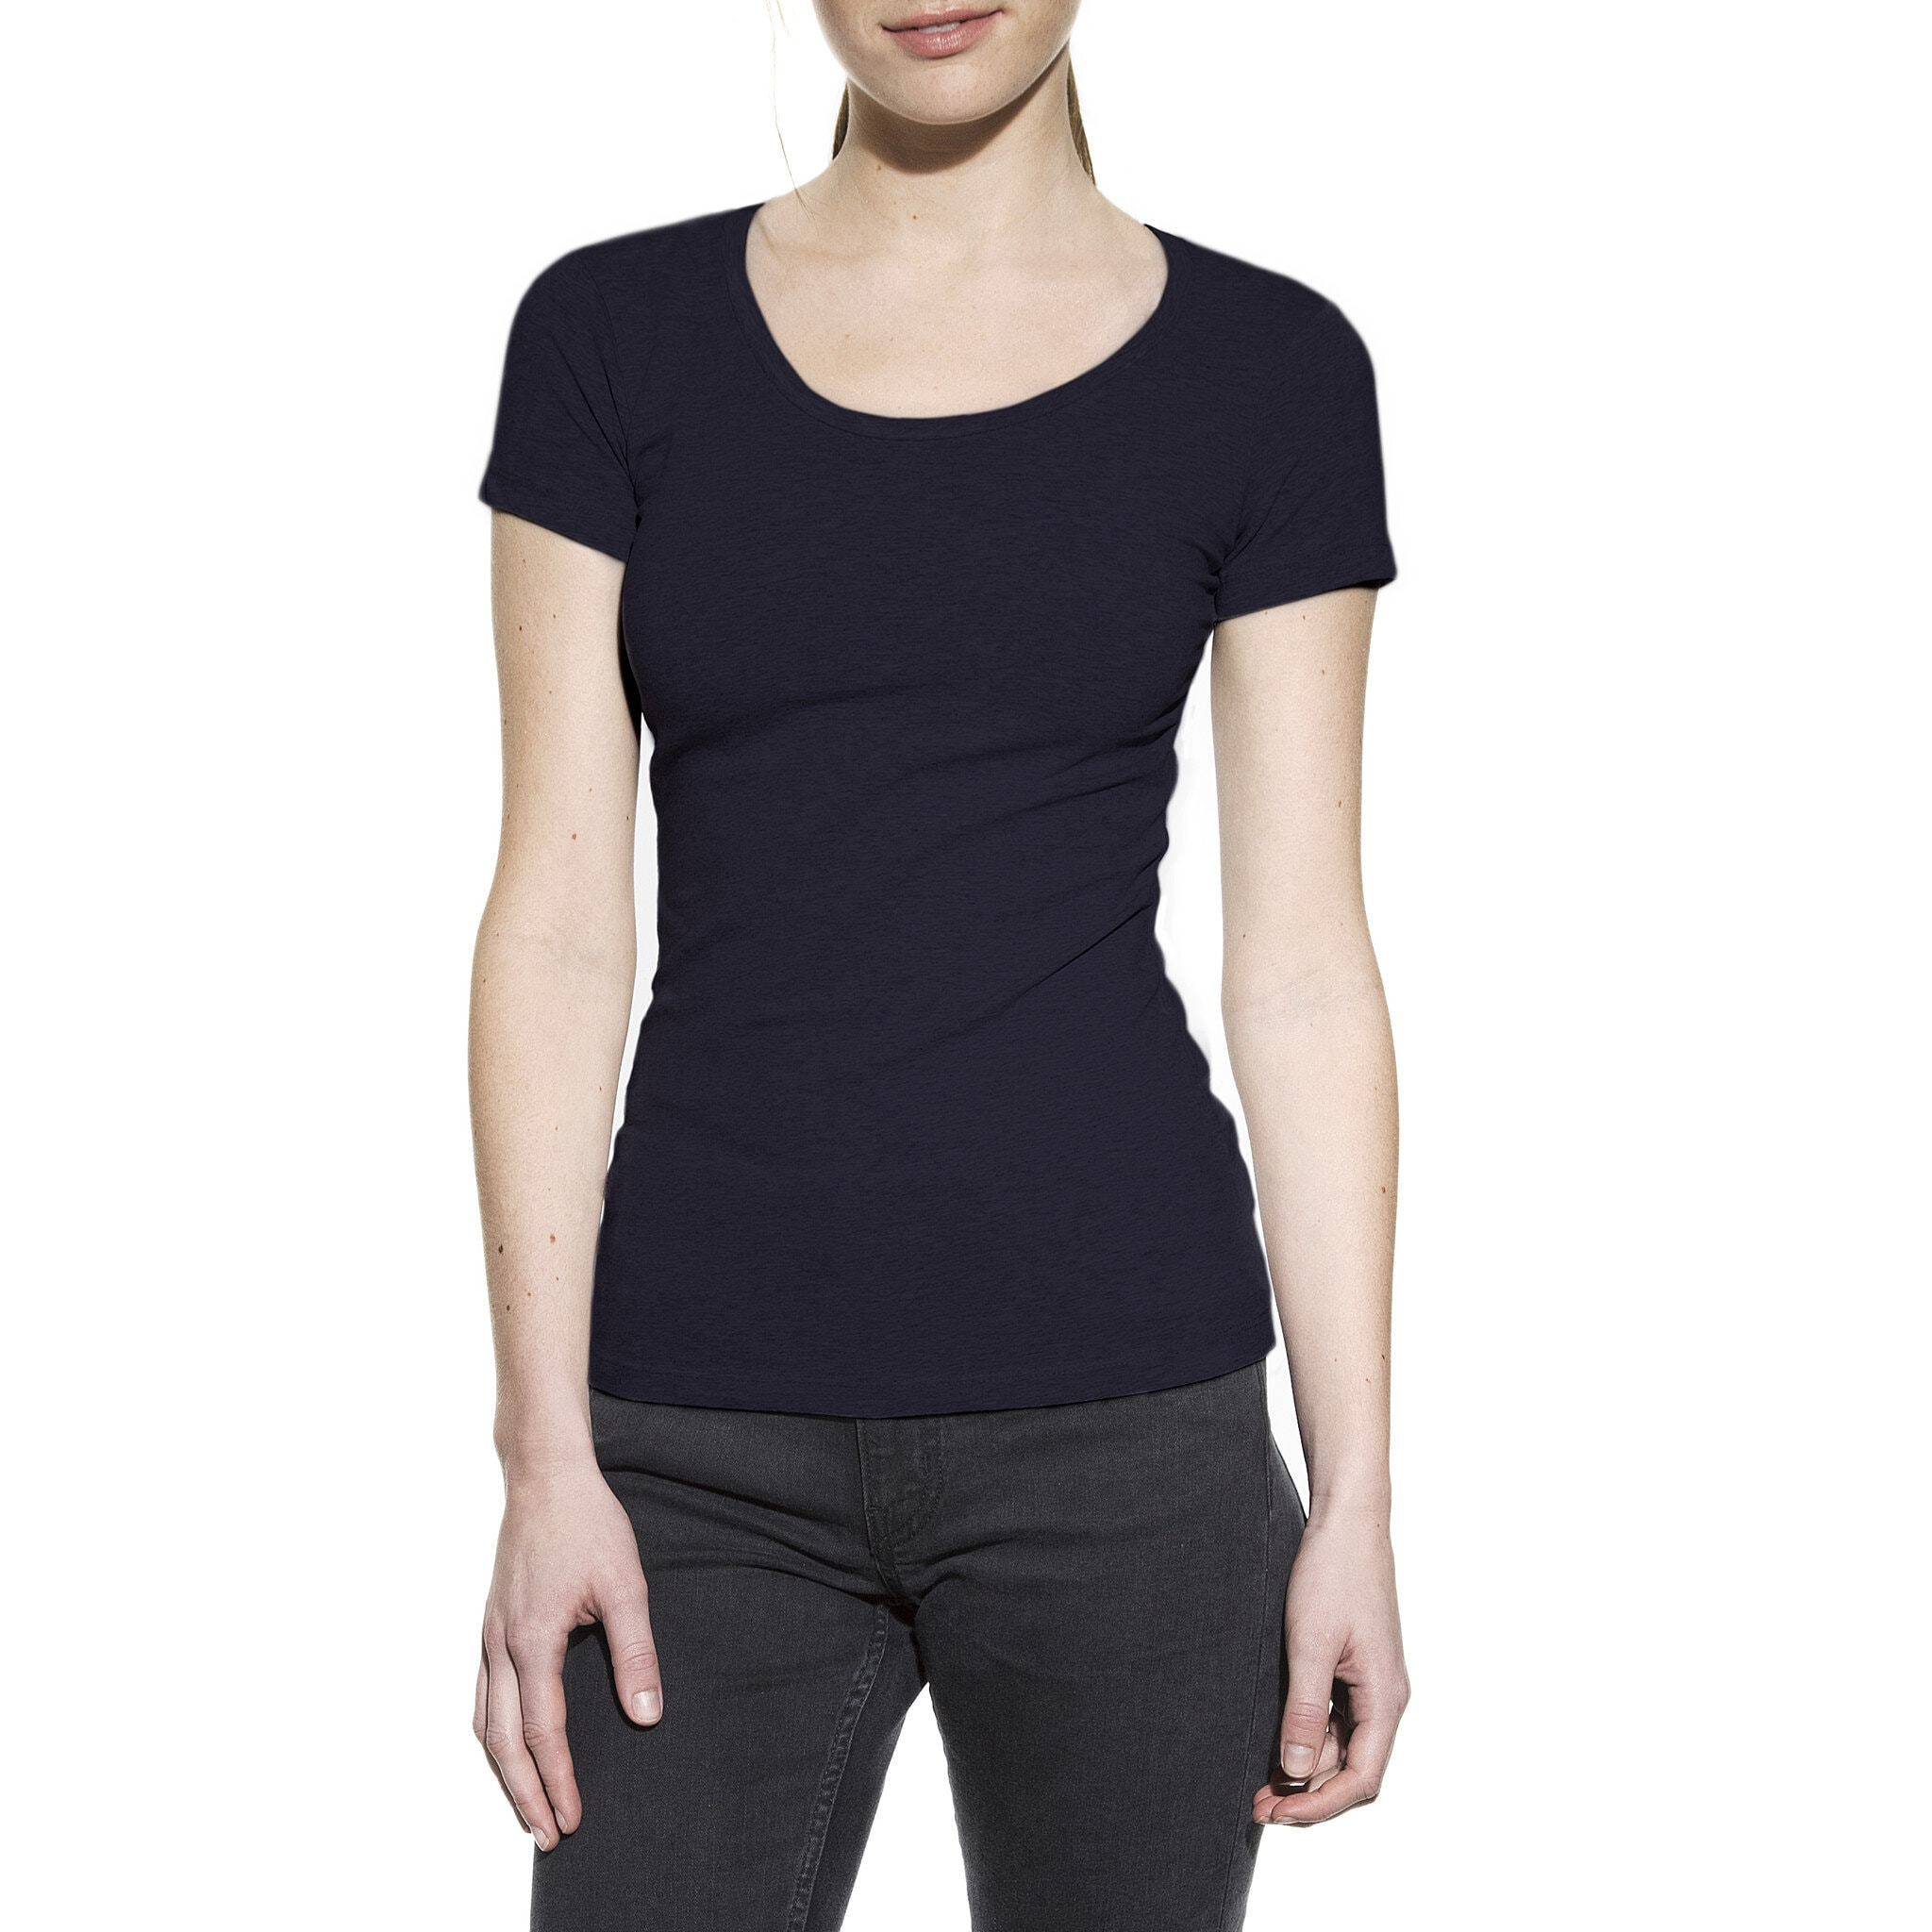 601104_Woman_Crew-Neck_dark-navy_1